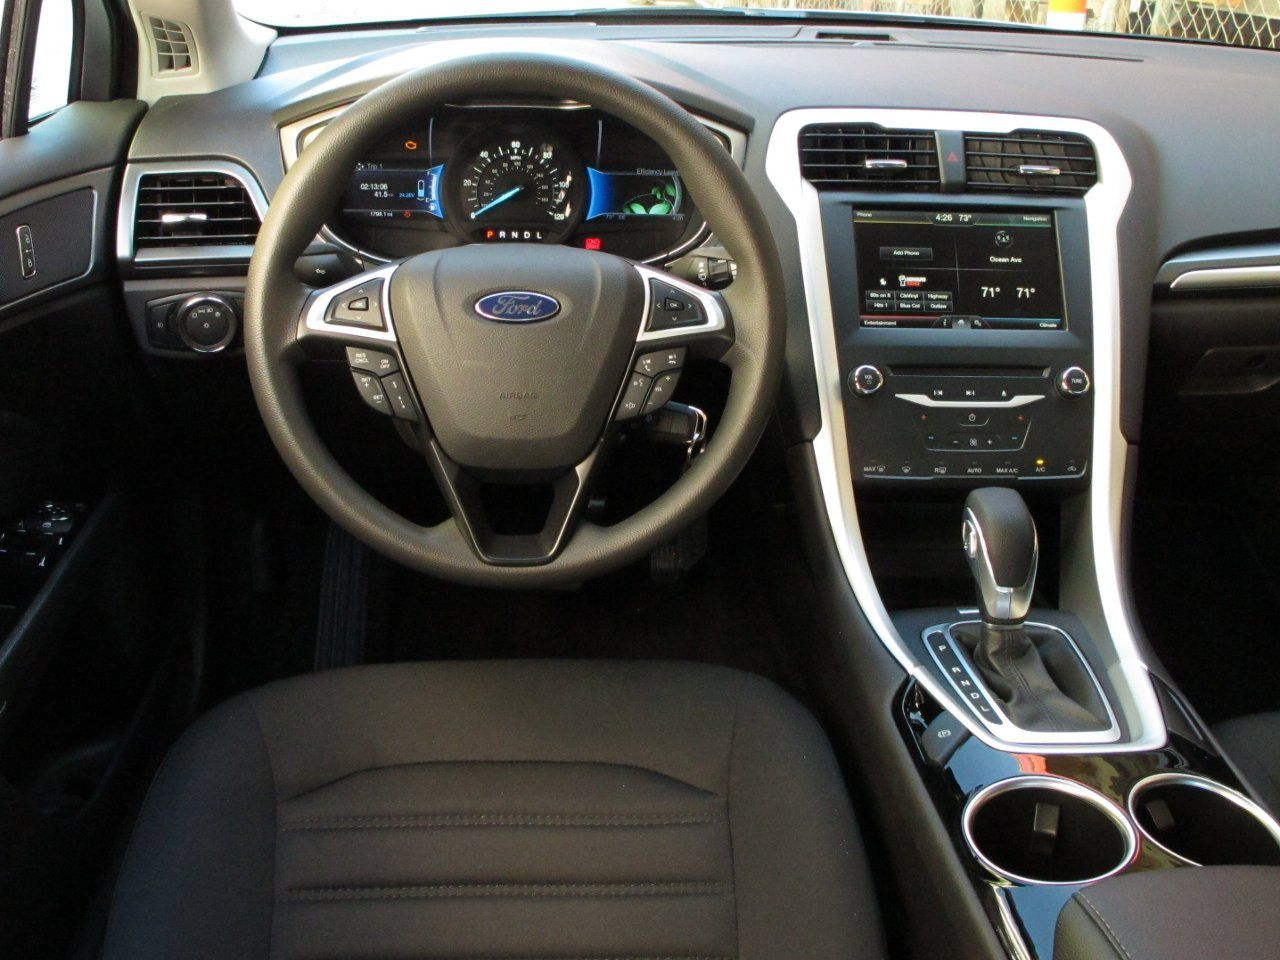 2013 Ford Fusion Hybrid Dashboard Car Latest Cars Wallpapers